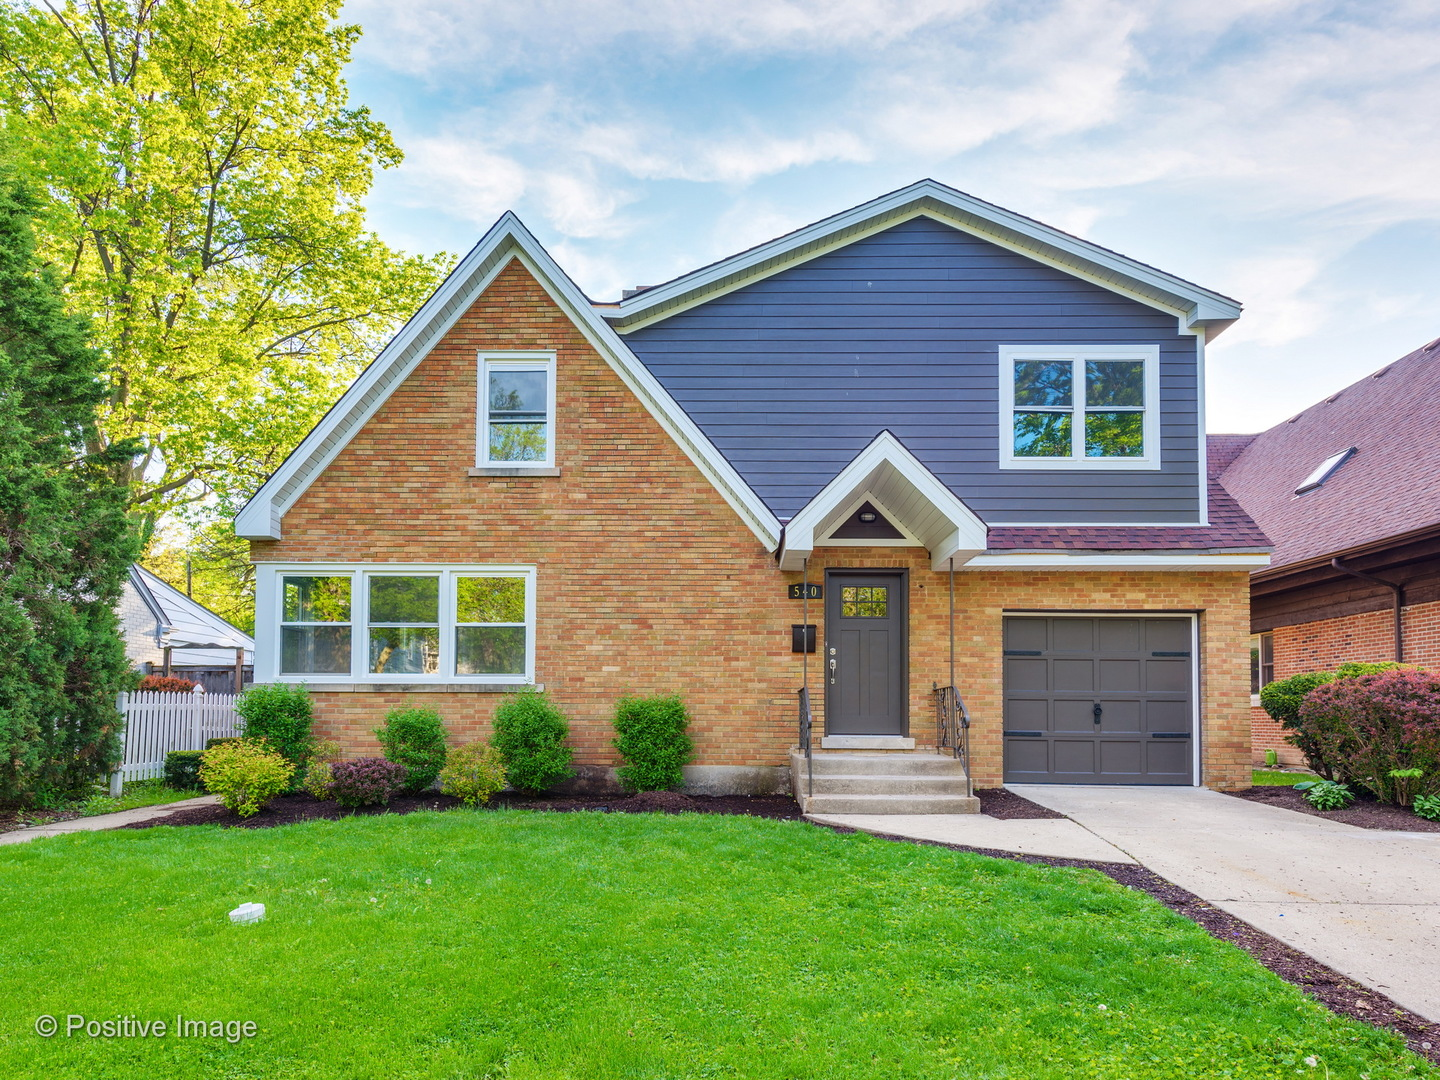 la grange park guys Hire the best gutter cleaning and repair services in la grange park, il on homeadvisor we have 842 homeowner reviews of top la grange park gutter cleaning and repair services.